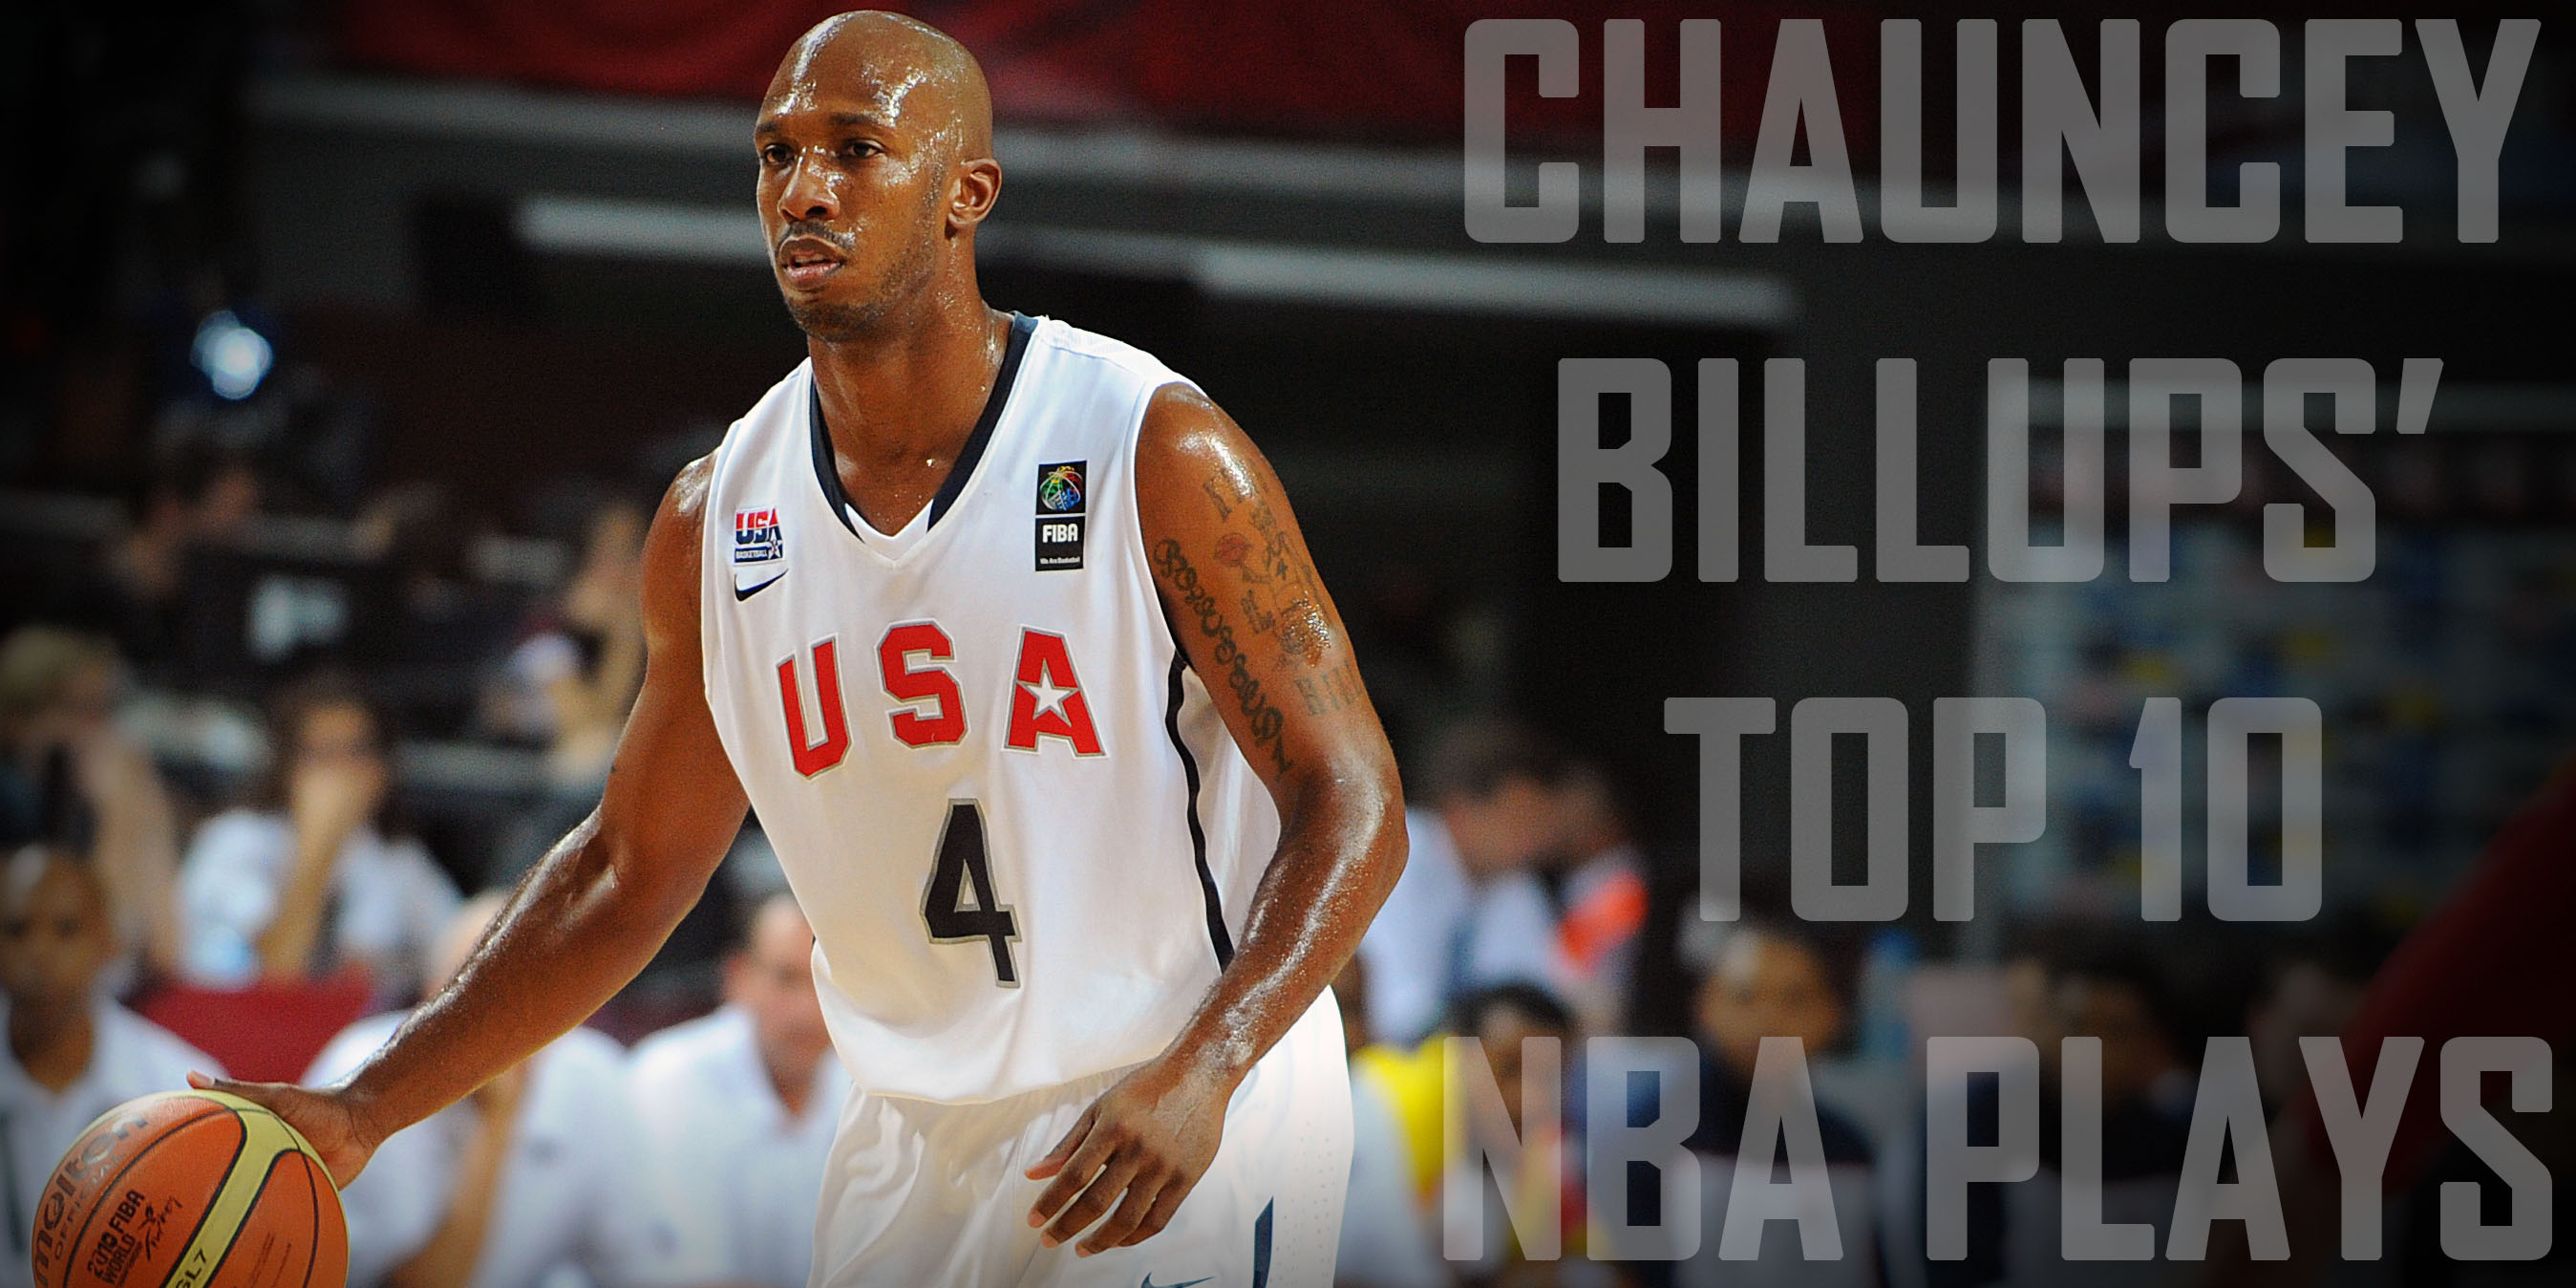 Chauncey Billups Top 10 NBA Plays